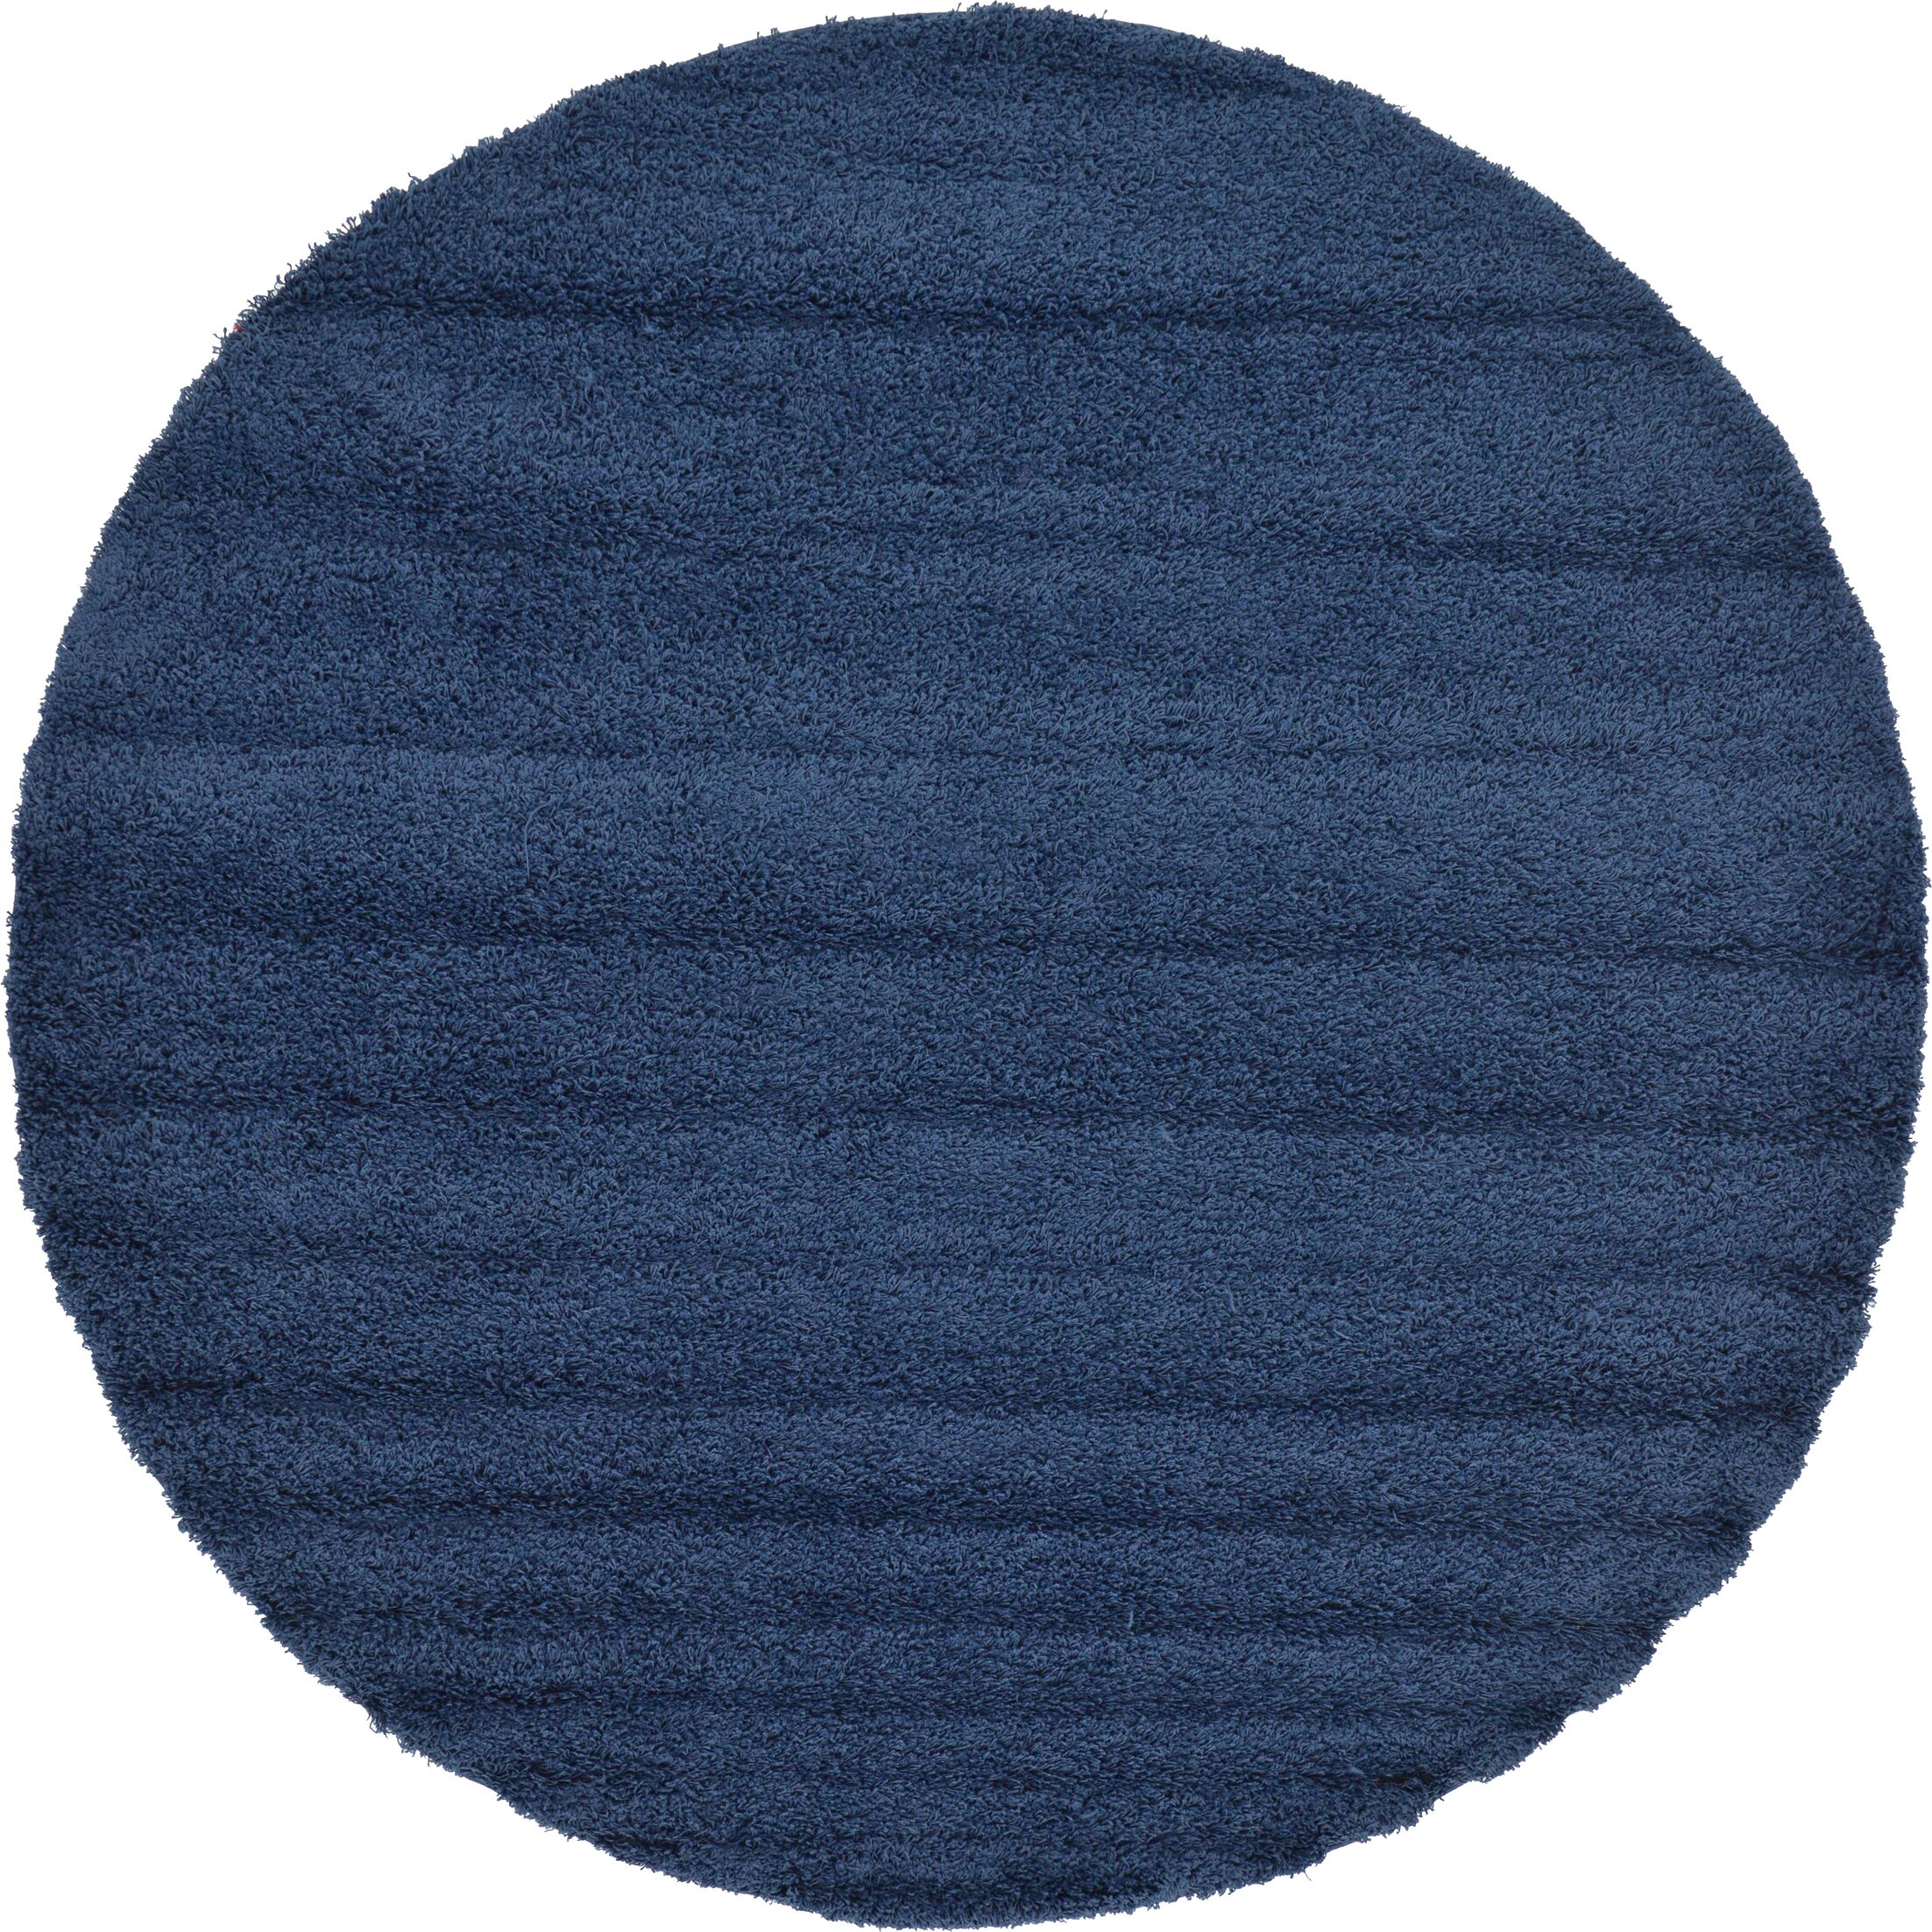 Falmouth Sapphire Area Rug Rug Size: Round 8'2